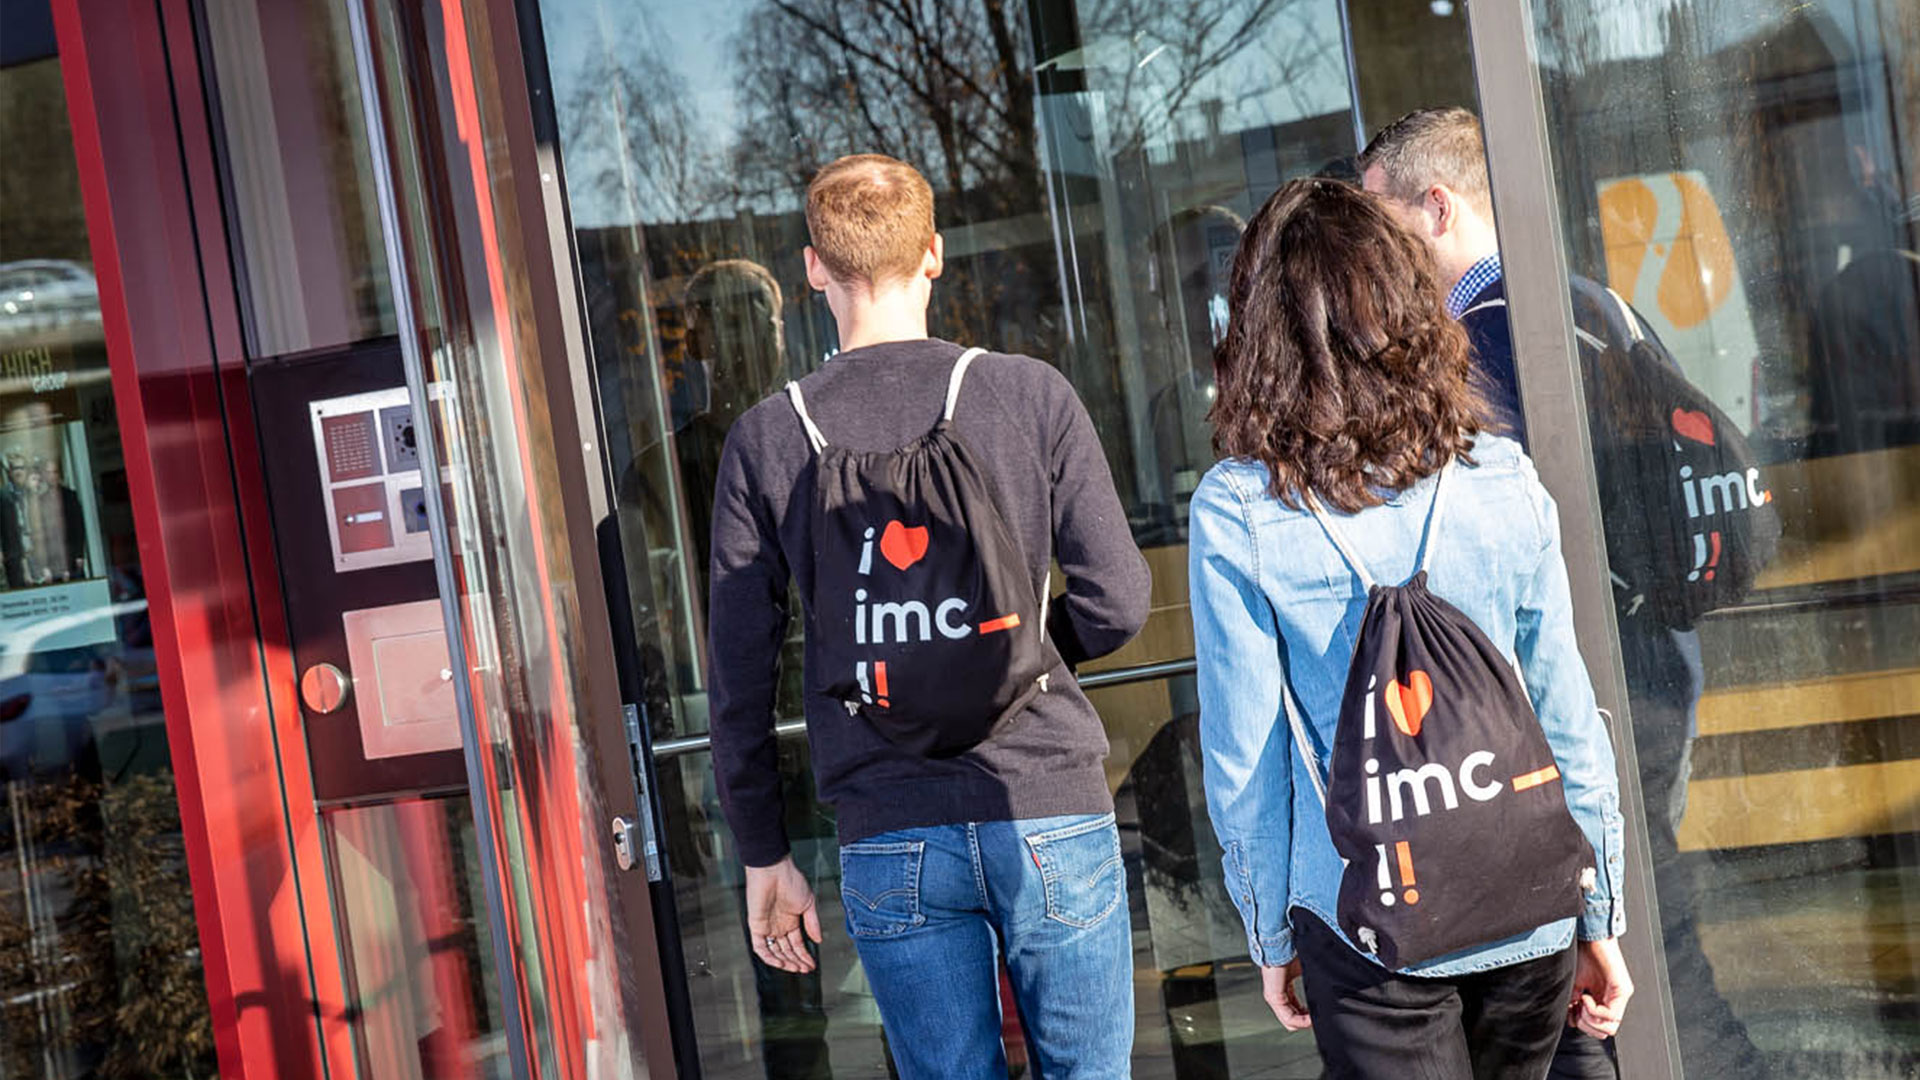 image of new employees entering imc office tower